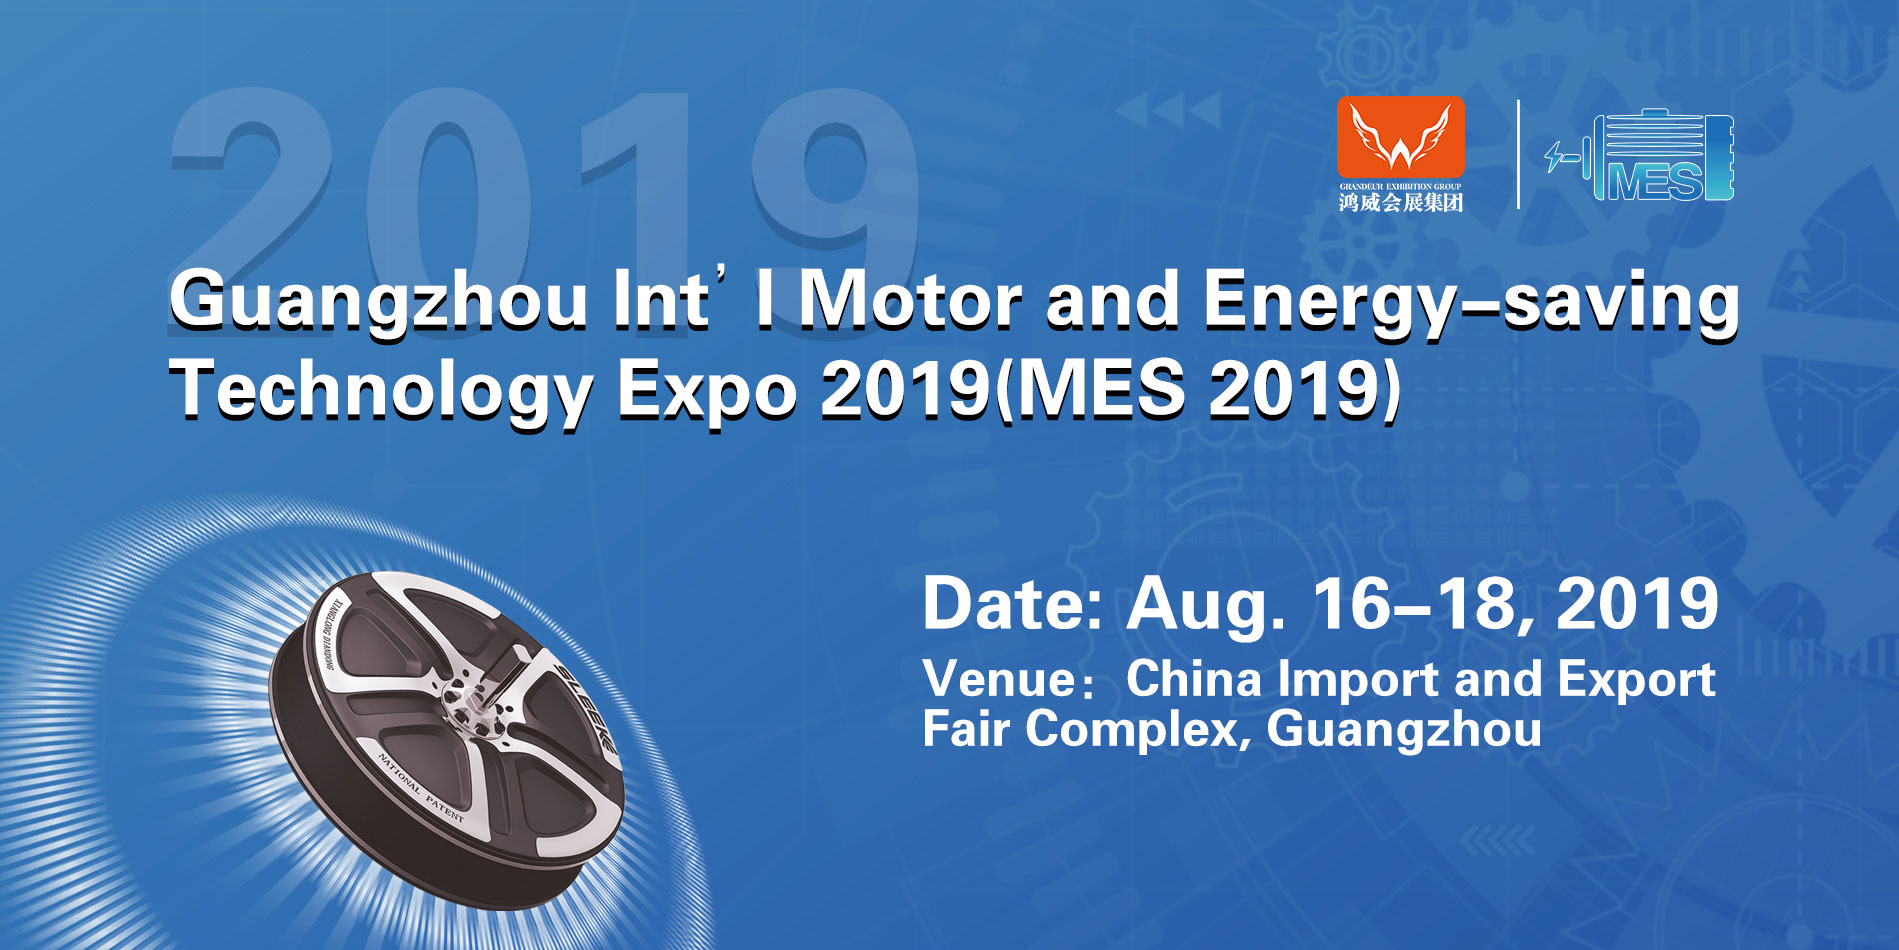 NICHIBO DC MOTOR will participate in the Guangzhou Int'l Motor and Energy-saving Technology Expo (MES 2019)